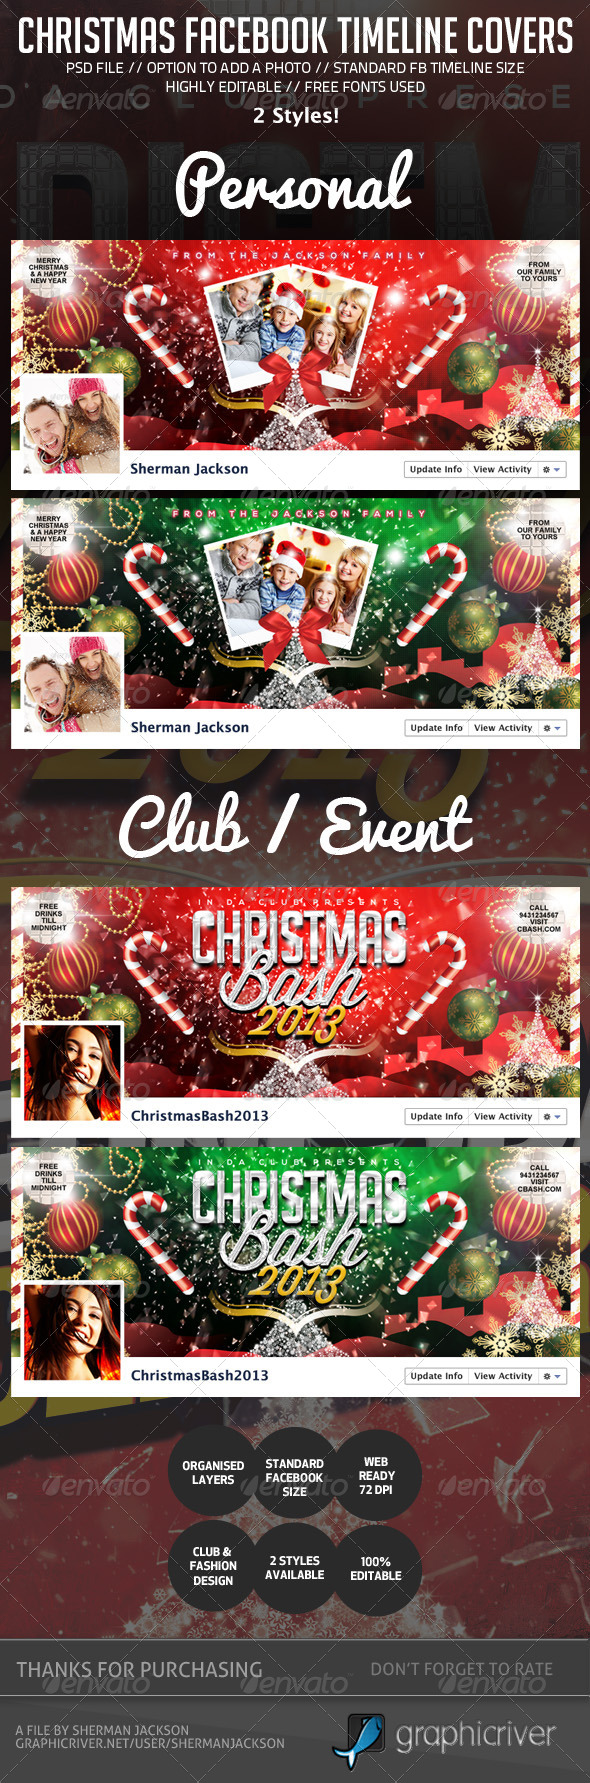 Christmas/Holiday Facebook Timeline Cover - Facebook Timeline Covers Social Media